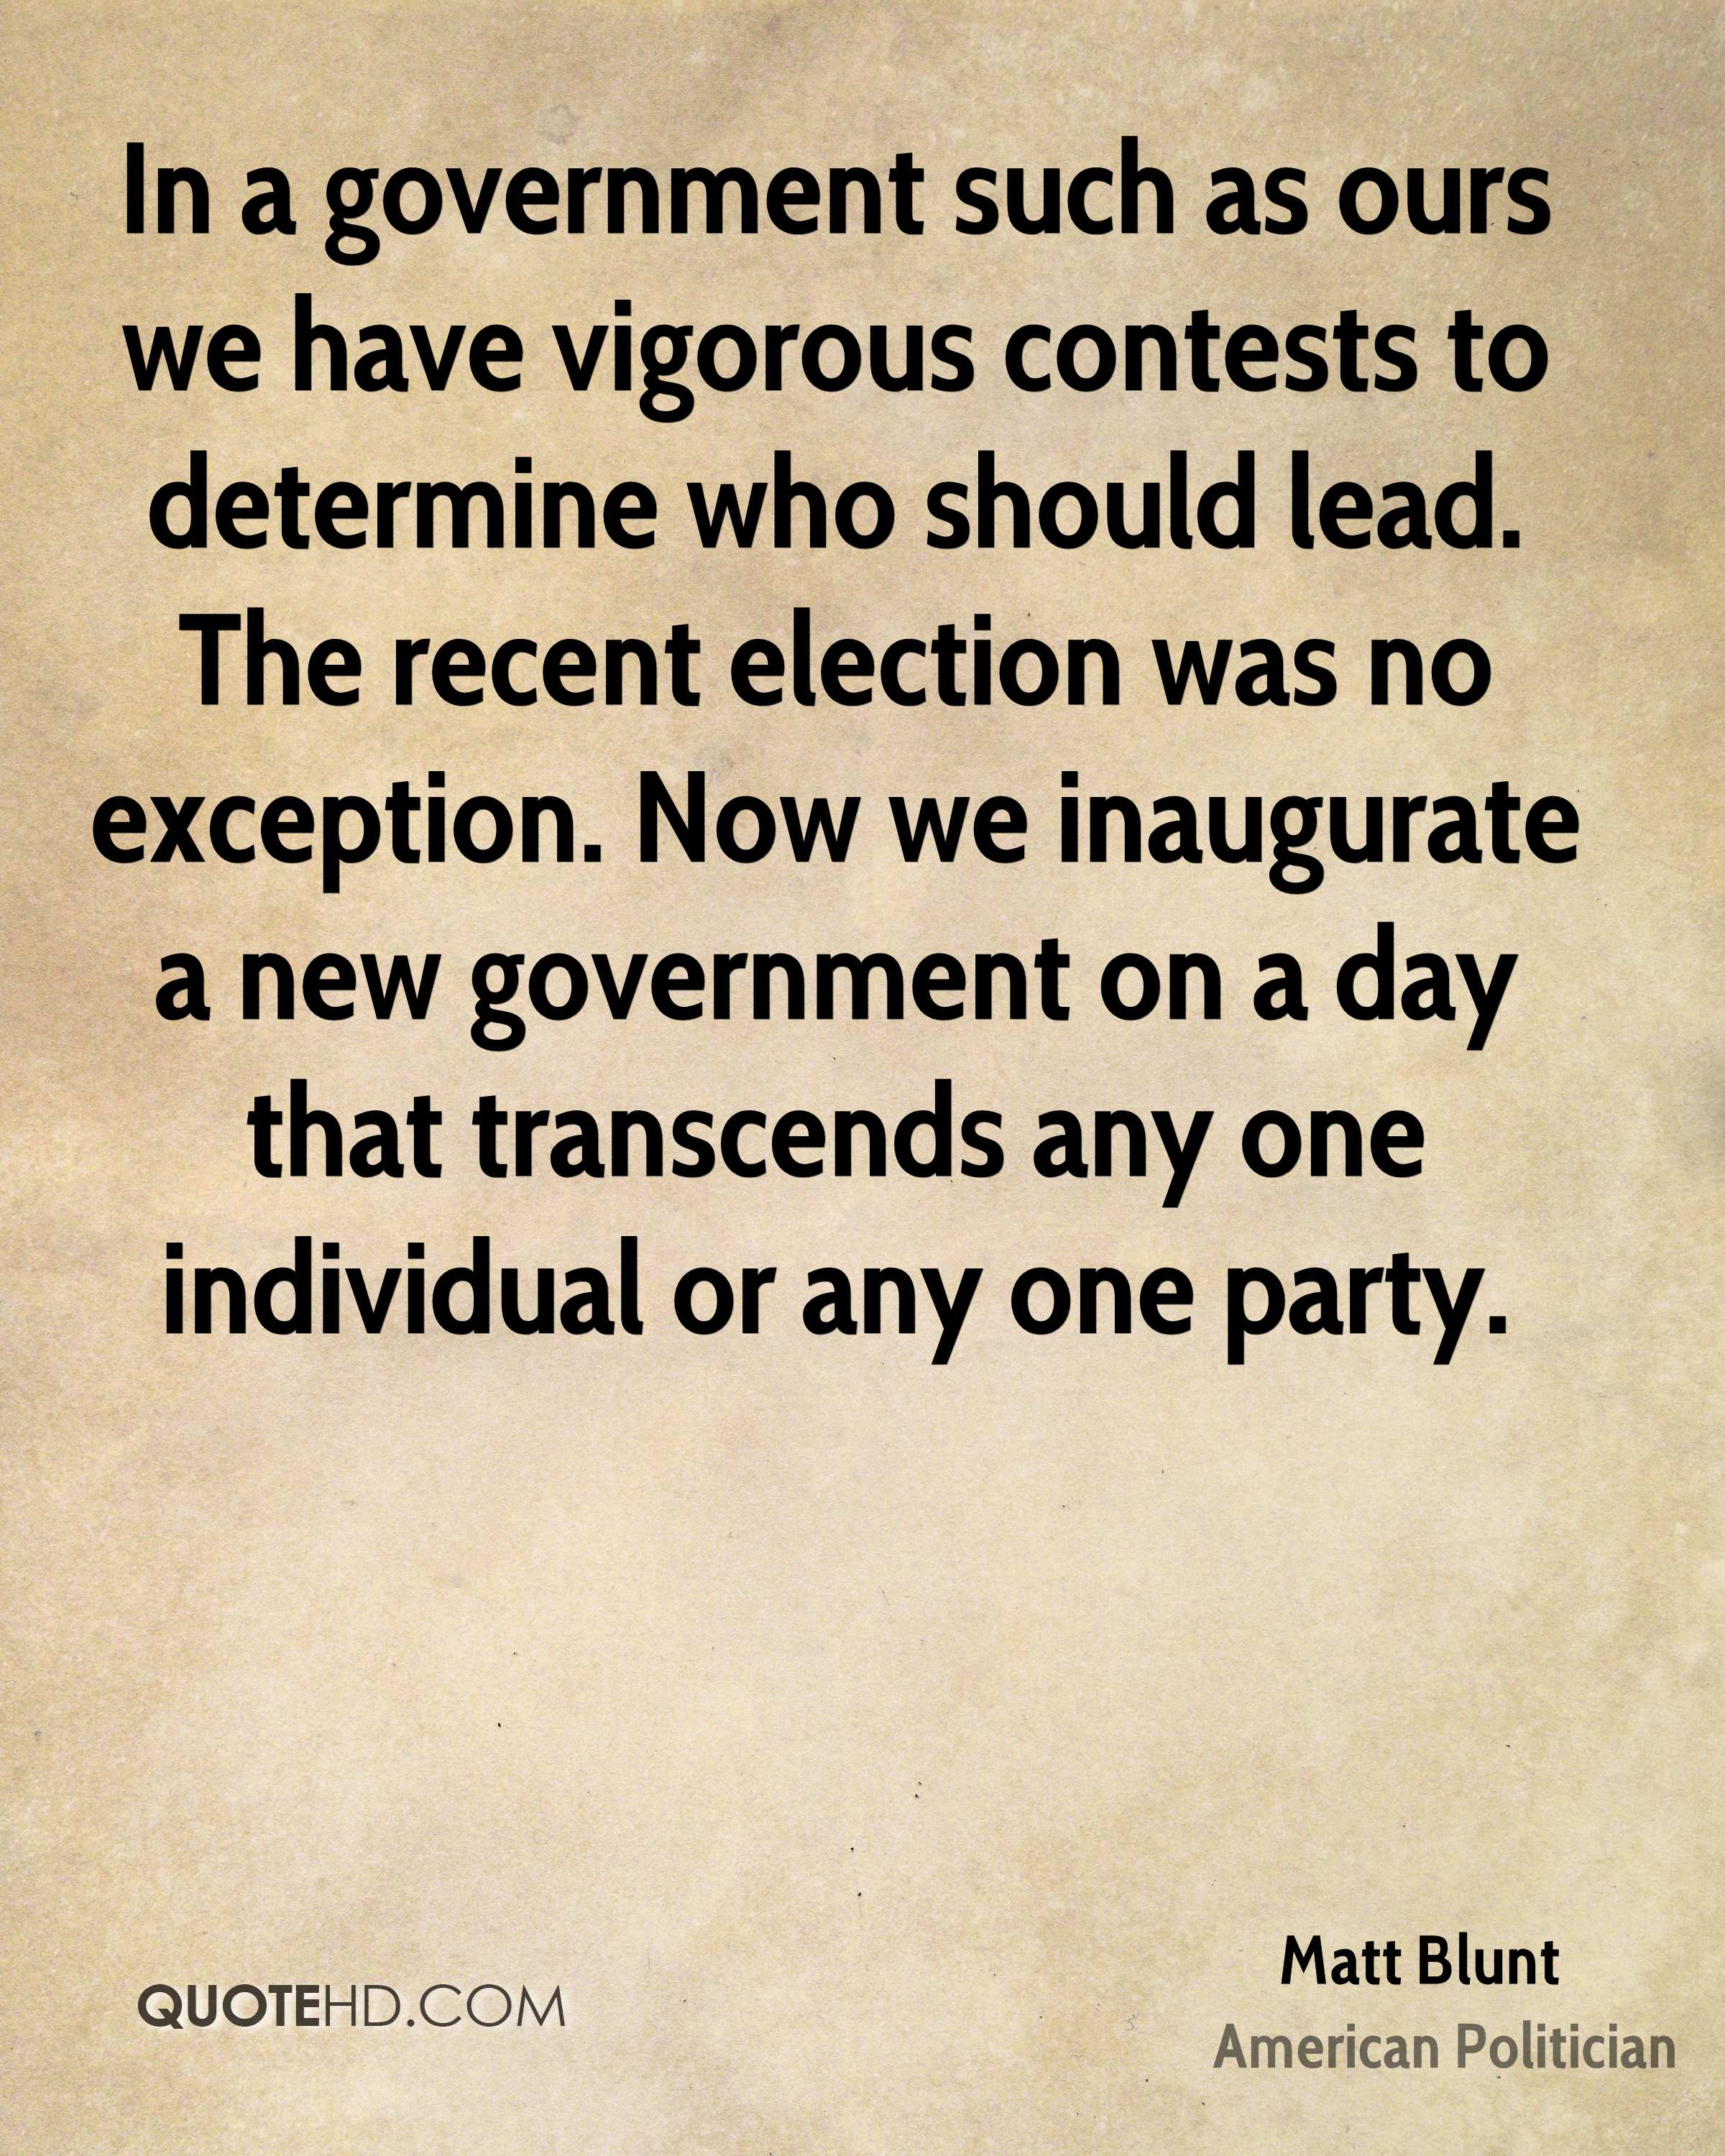 In a government such as ours we have vigorous contests to determine who should lead. The recent election was no exception. Now we inaugurate a new government on a day that transcends any one individual or any one party.